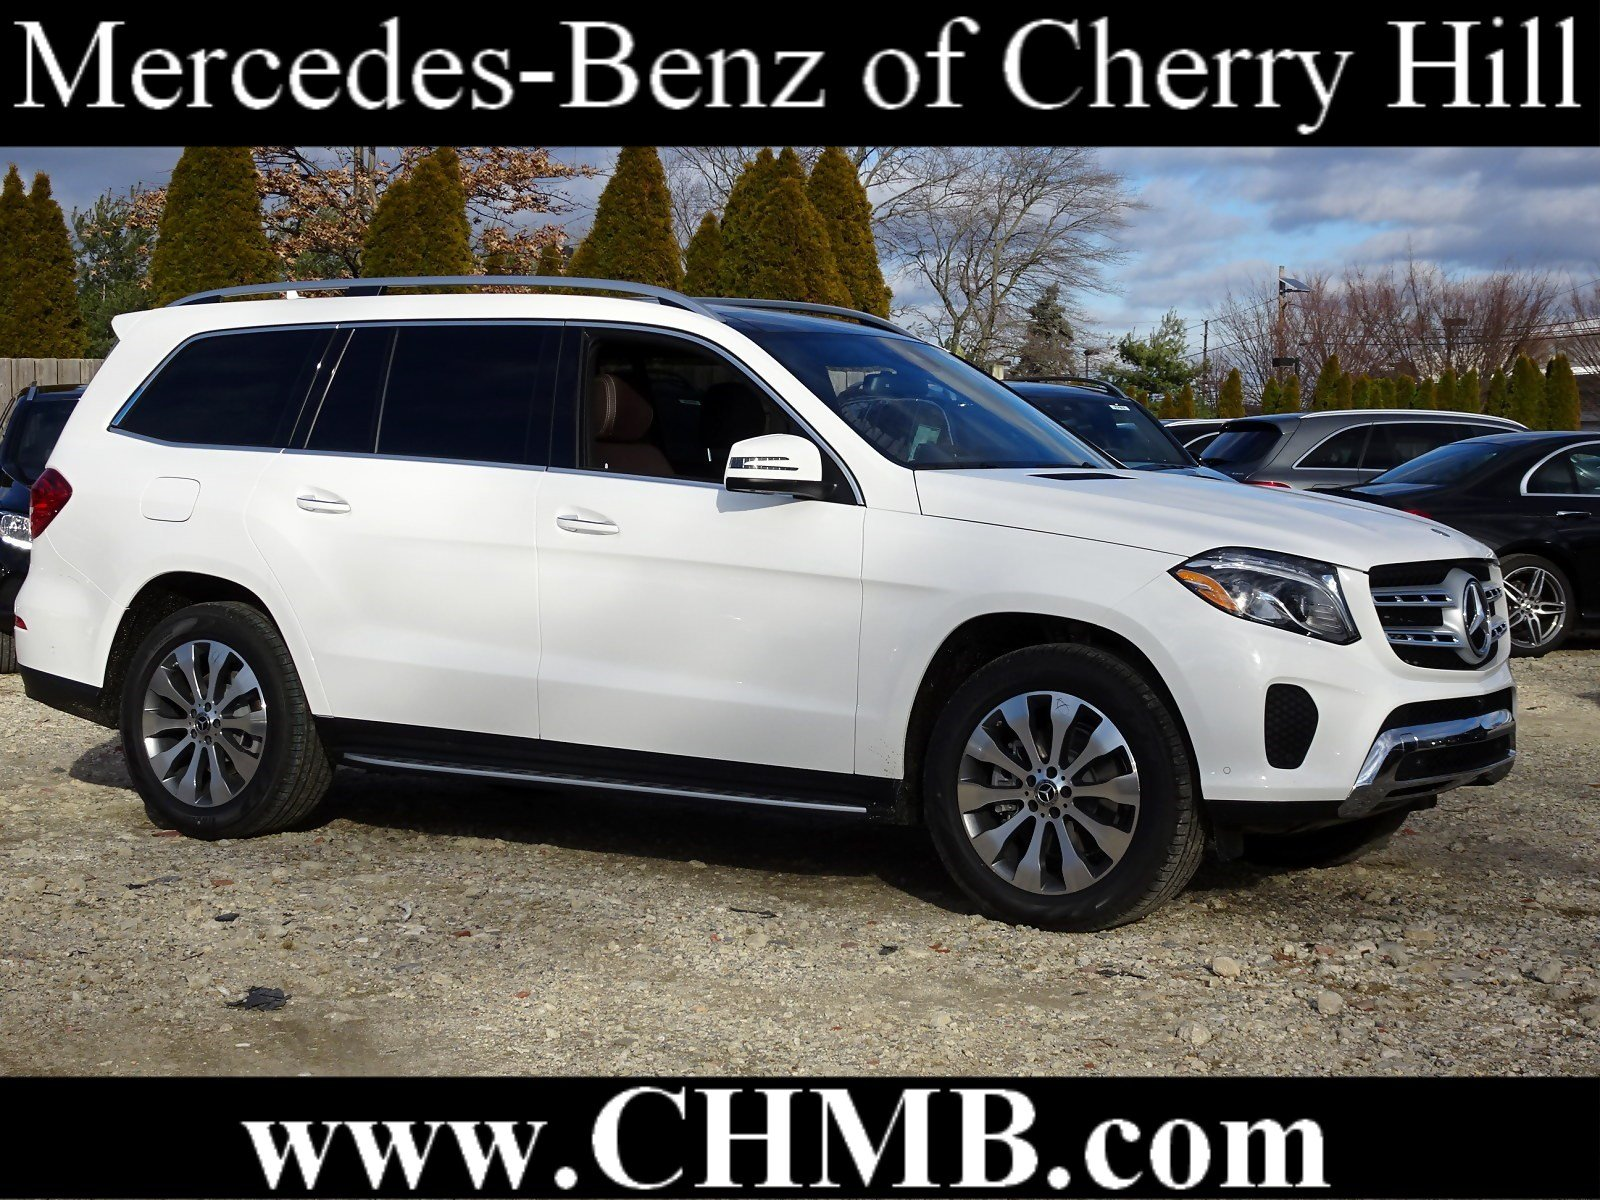 New 2019 Mercedes Benz Gls 450 Suv In Cherry Hill M2767 C230 Panel Speaker On Wiring Harness For Trailer Hitch